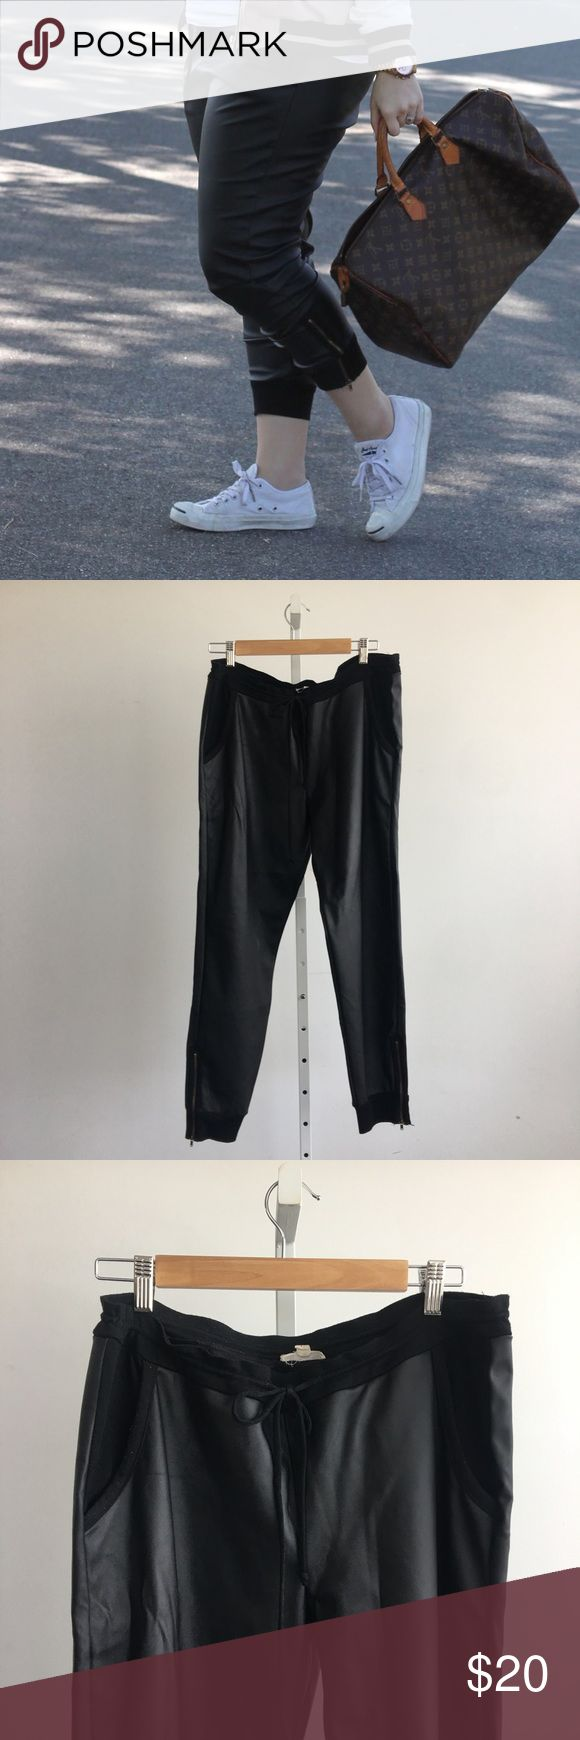 Black Faux Leather Jogger Pants Faux leather jogger pants with drawstring waist, pockets, and zipper at ankles. Worn, but in good used condition. Please carefully review each photo before purchase as they are the best descriptors of the item. My price is firm. No trades. First come, first served. Thank you! :) Pants Track Pants & Joggers